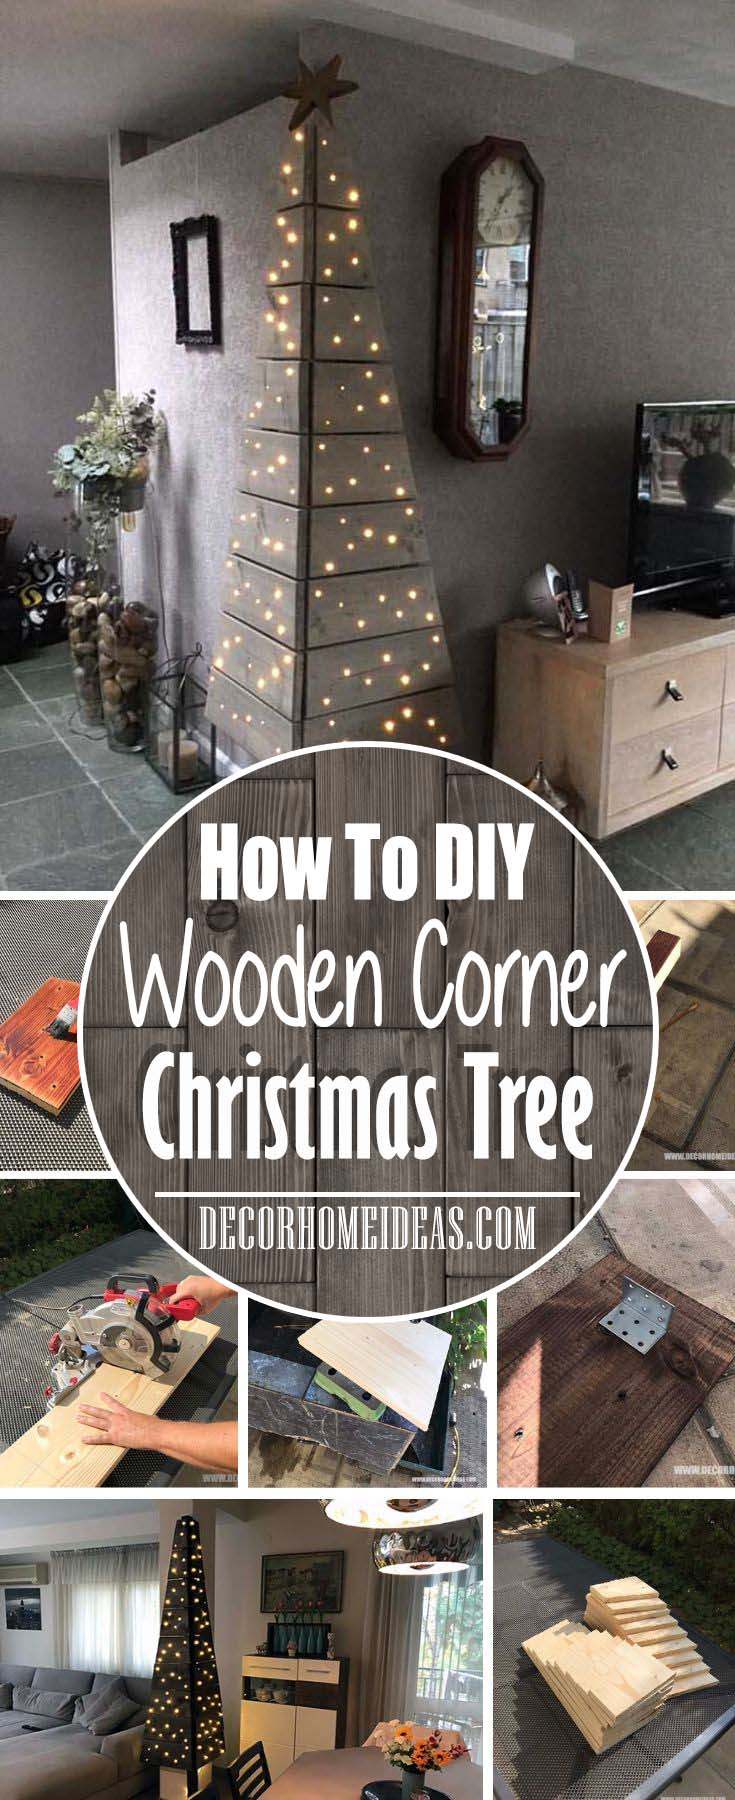 How To DIY Wooden Corner Christmas Tree. Step by step instructions, materials and tools #Christmas #diy #Christmastree #decorhomeideas